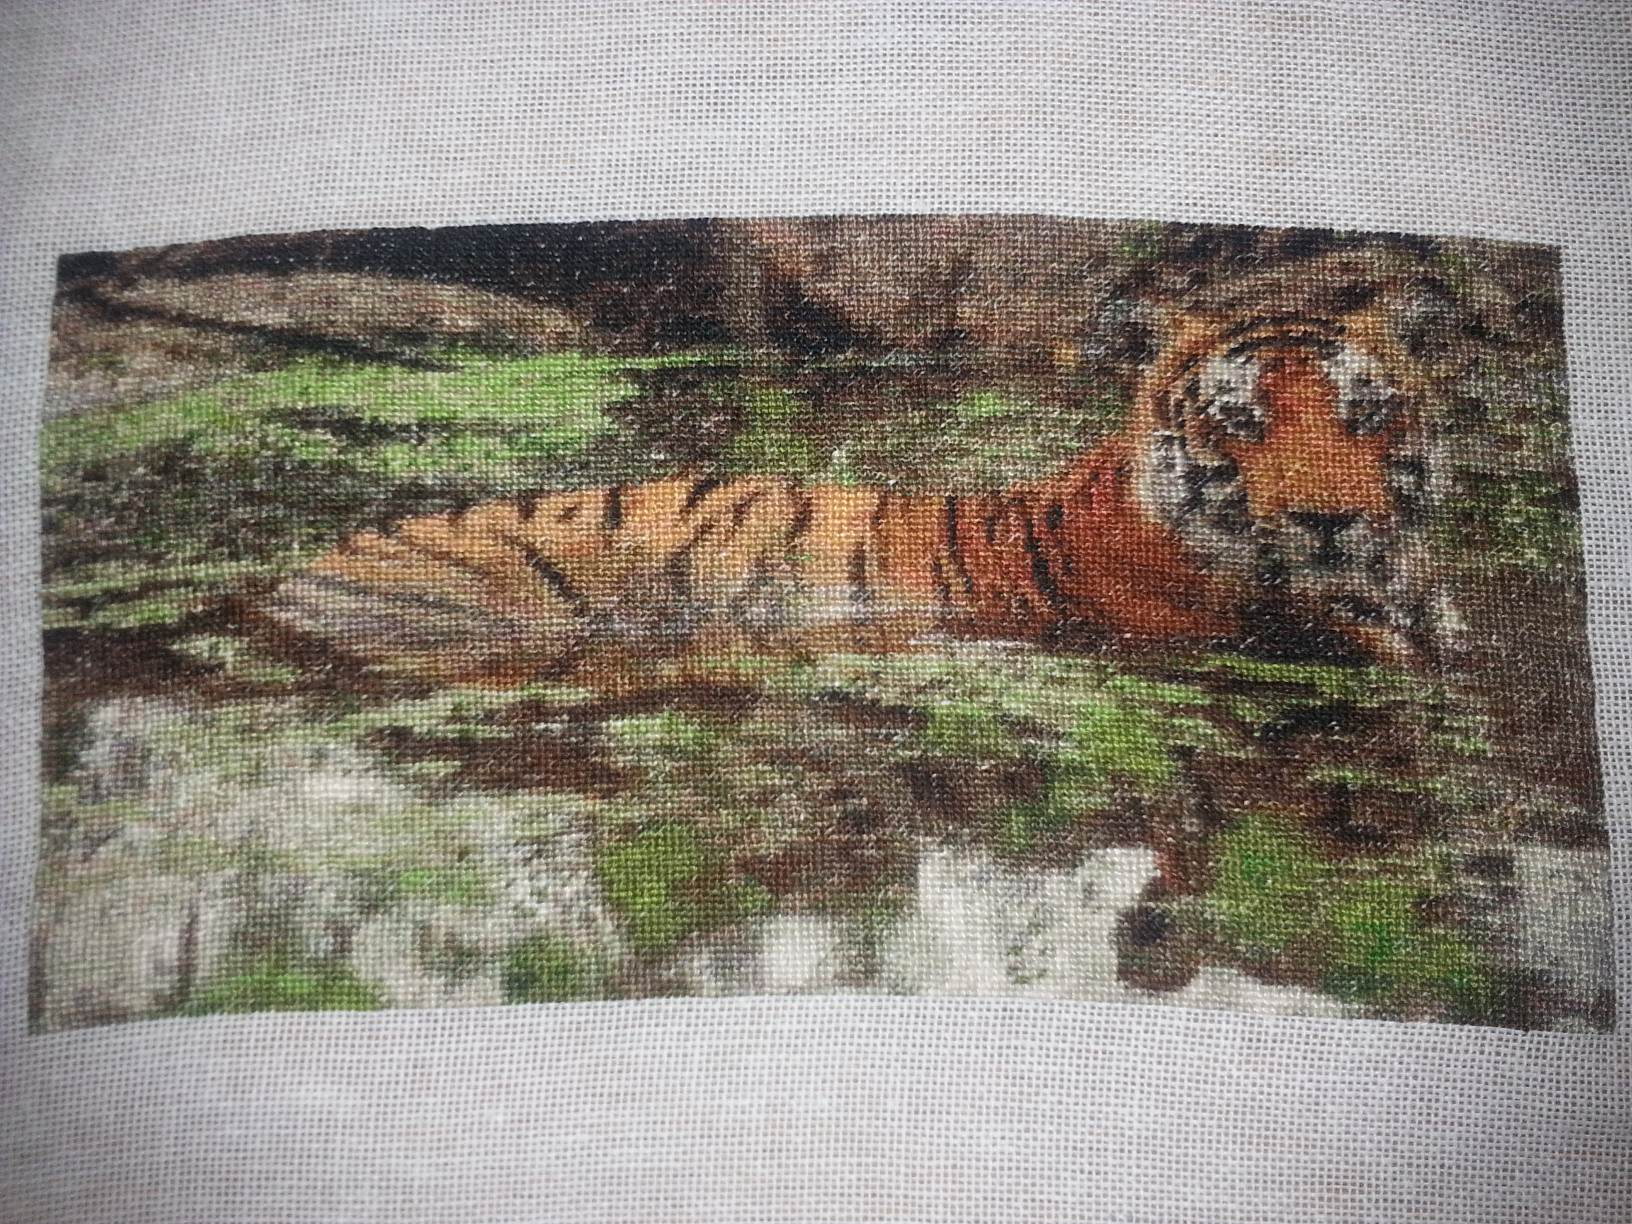 Tiger in Waterhole Small Completed Project